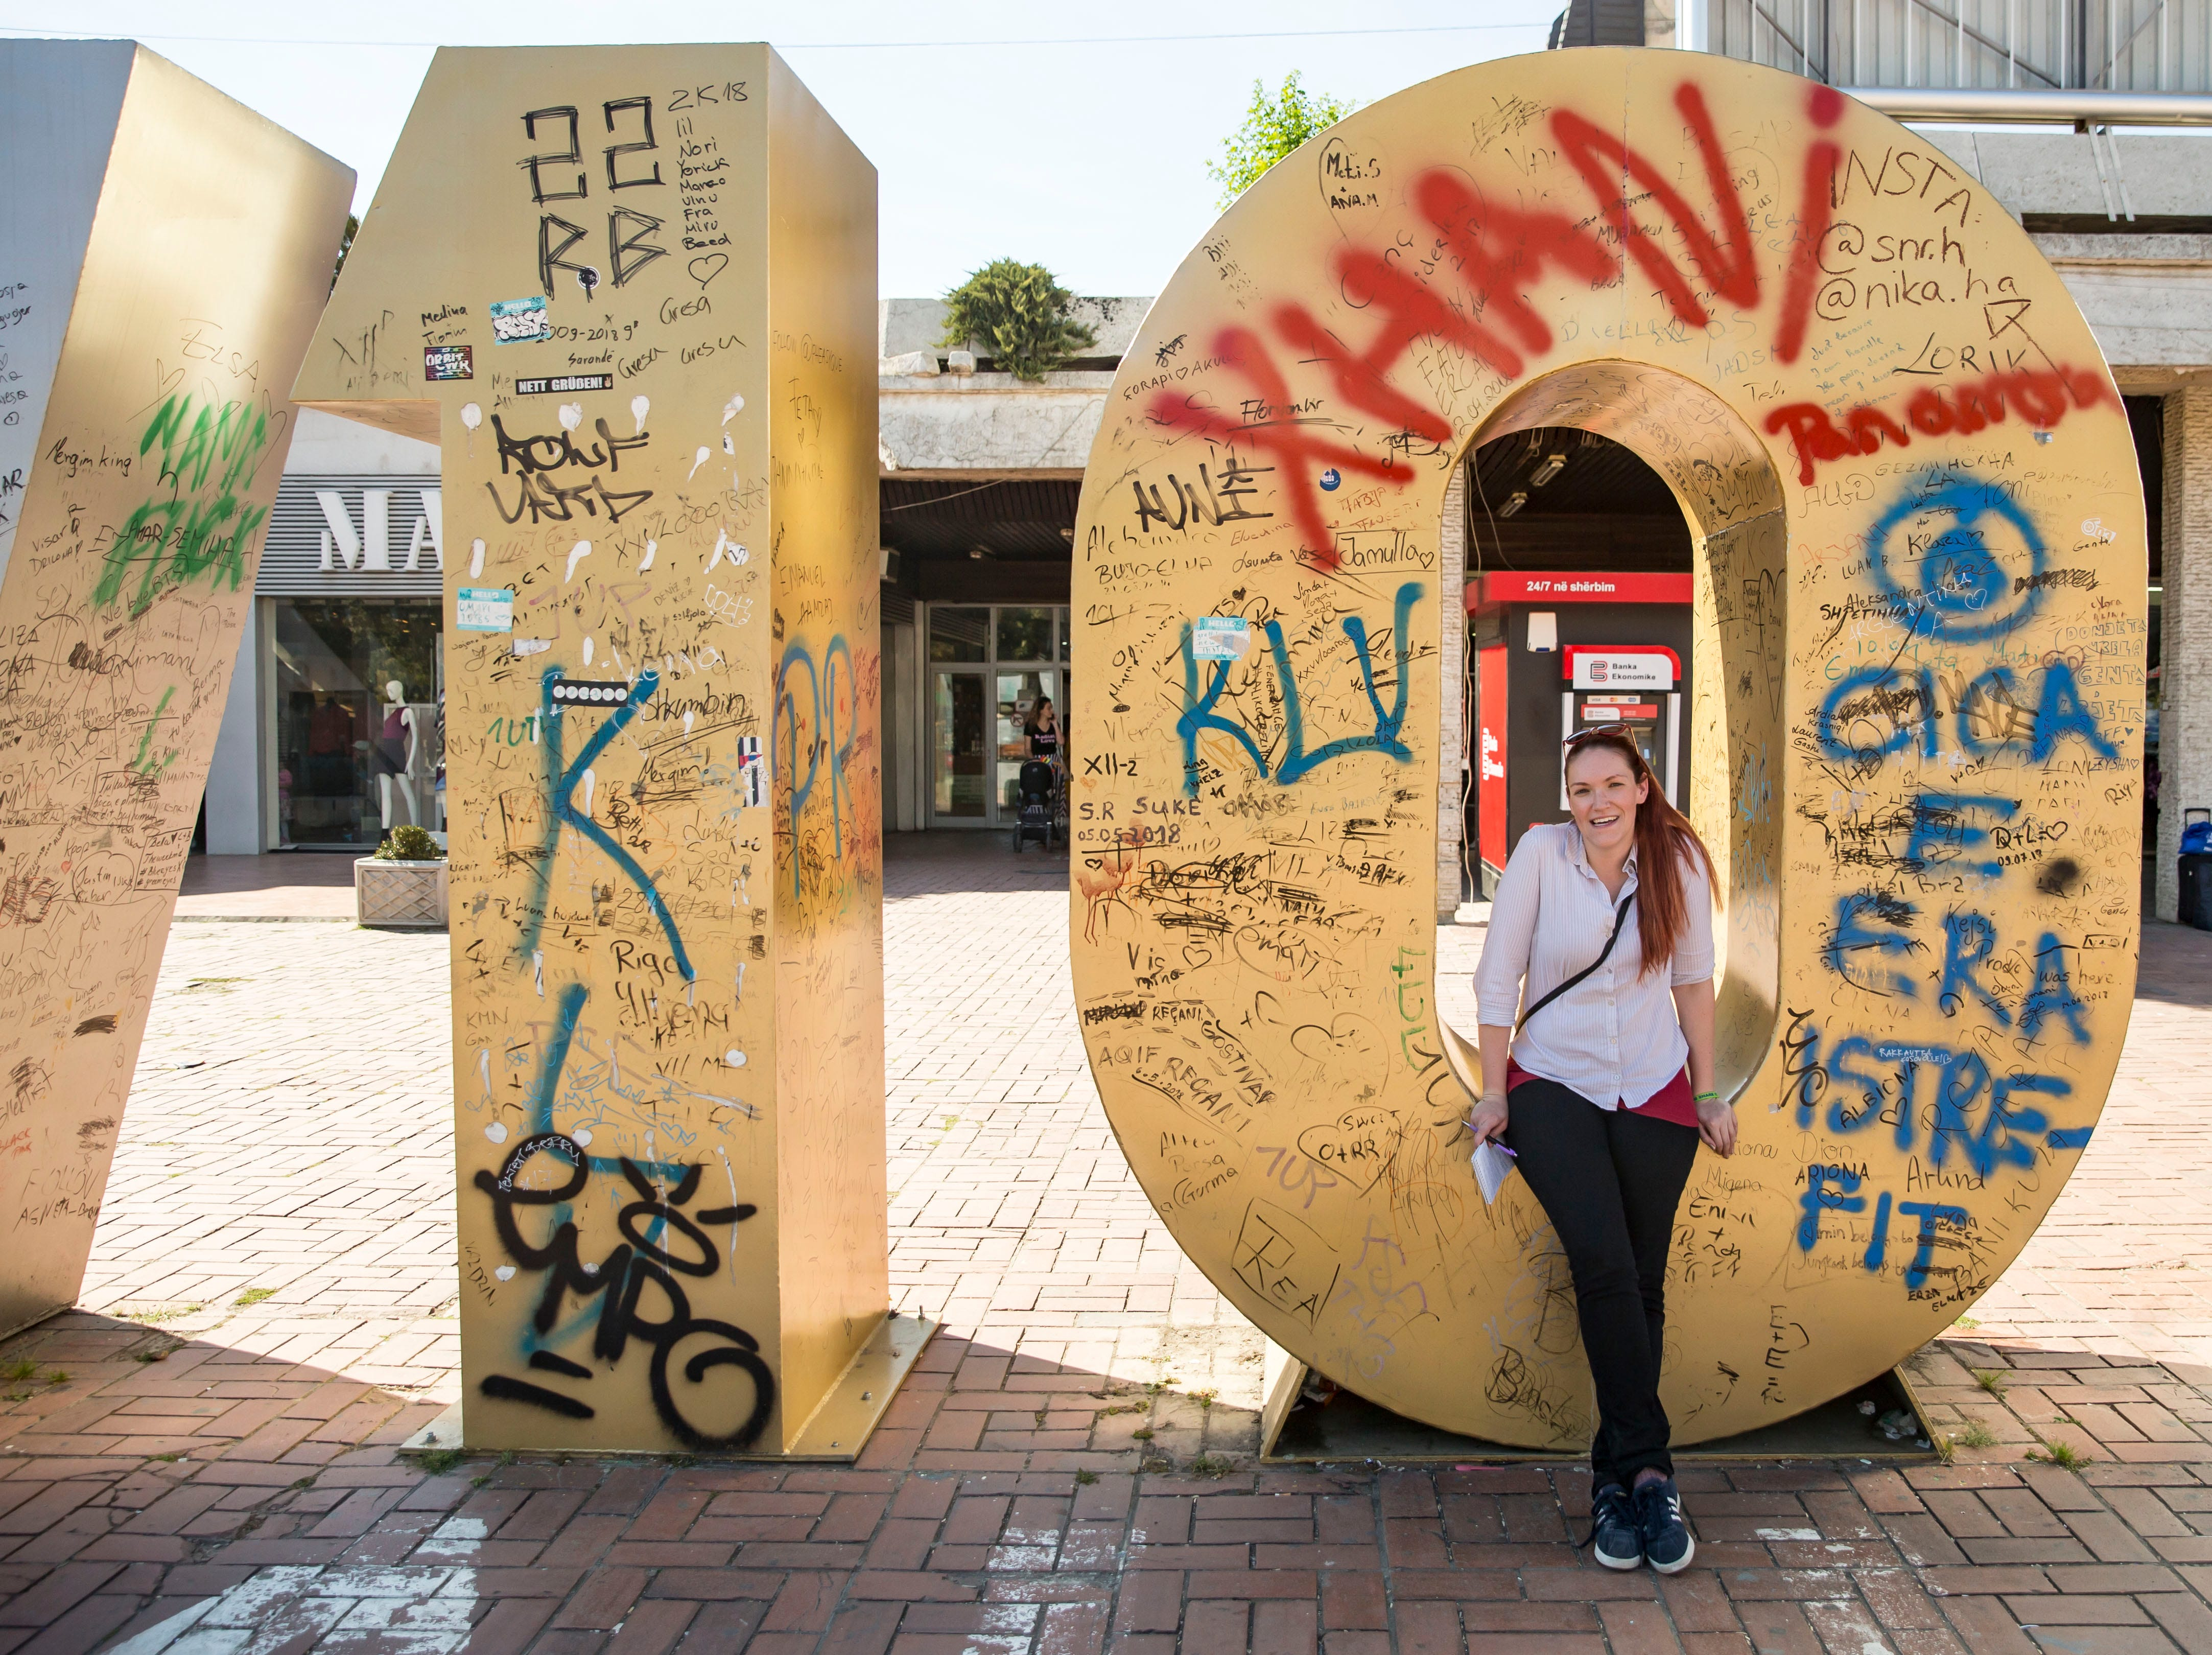 Iowa columnist Courtney Crowder at the Newborn sculpture in Pristina, Kosovo, Monday Sept. 17, 2018. This year, the O and R have been replaced with a 1 and 0 to commemorate the 10th anniversary of Kosovo's independence.